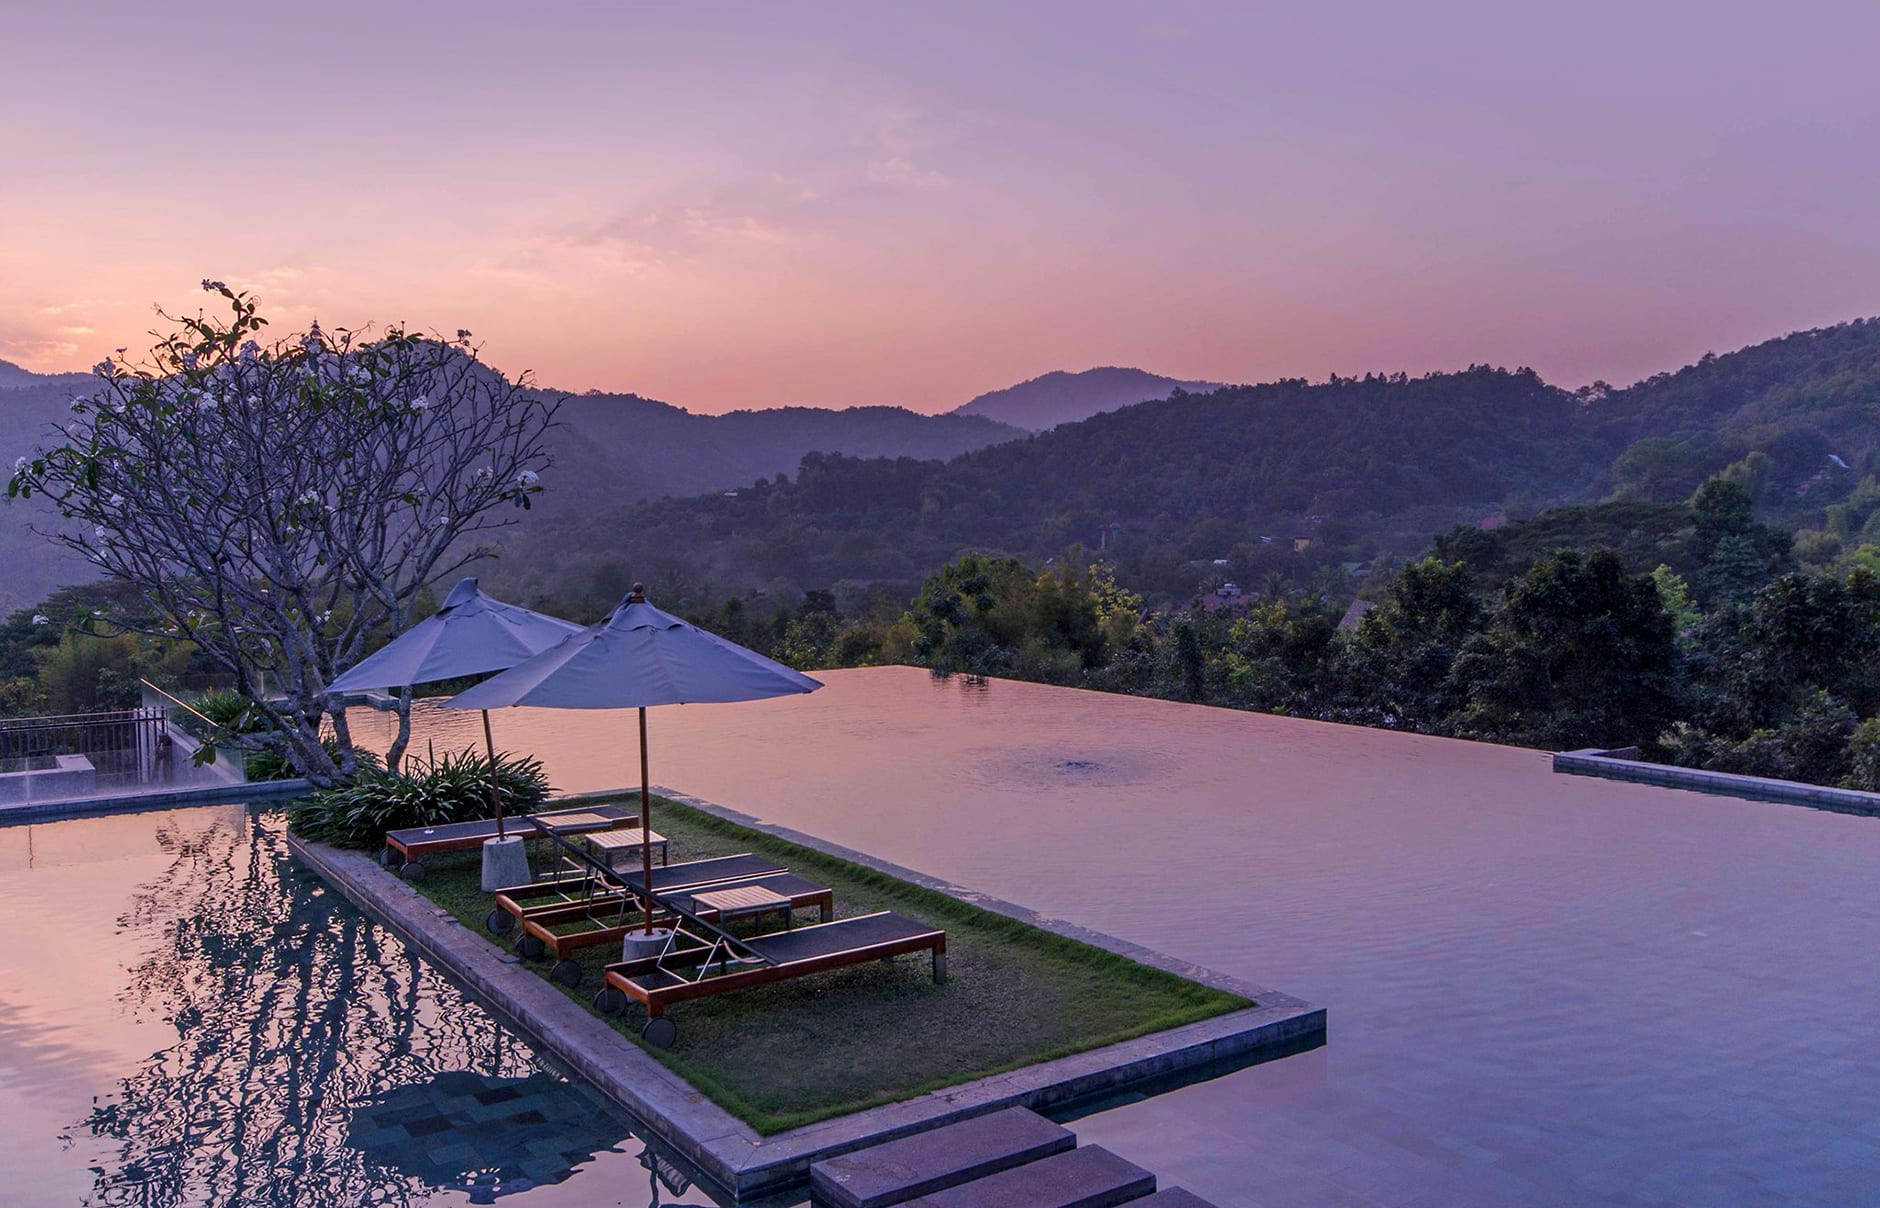 Veranda Chiang Mai - The High Resort. Thailand. © Veranda Chiang Mai - The High Resort